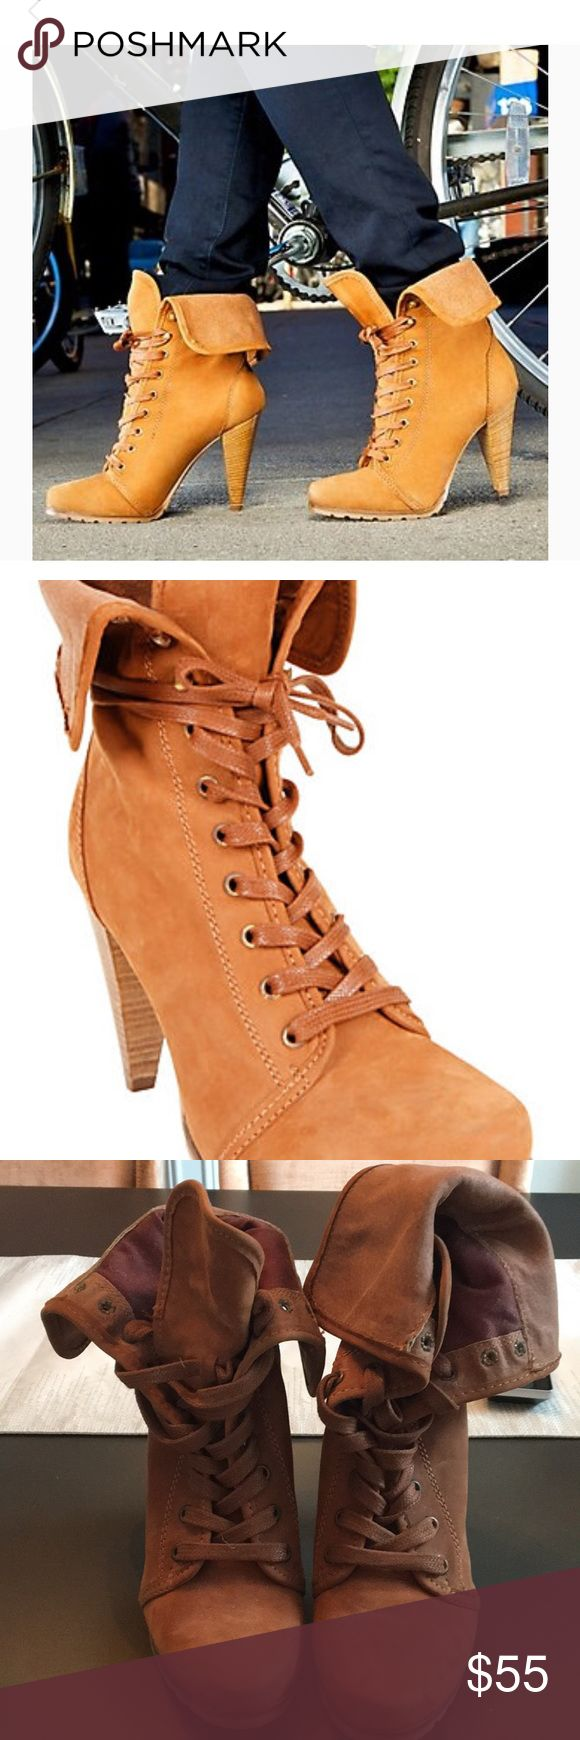 Steve Madden Timburr Boot The Timmburr boots – foldover top, exposed tongue, lace-up detail… this boot has it all!  A perfect mix of both tough & feminine.  I've always found foldover boots super chic & sexy.  Sure to give you a nice lift to any dull outfit. Worn once. Upper leather is clean with no nixs or scratches Steve Madden Shoes Lace Up Boots